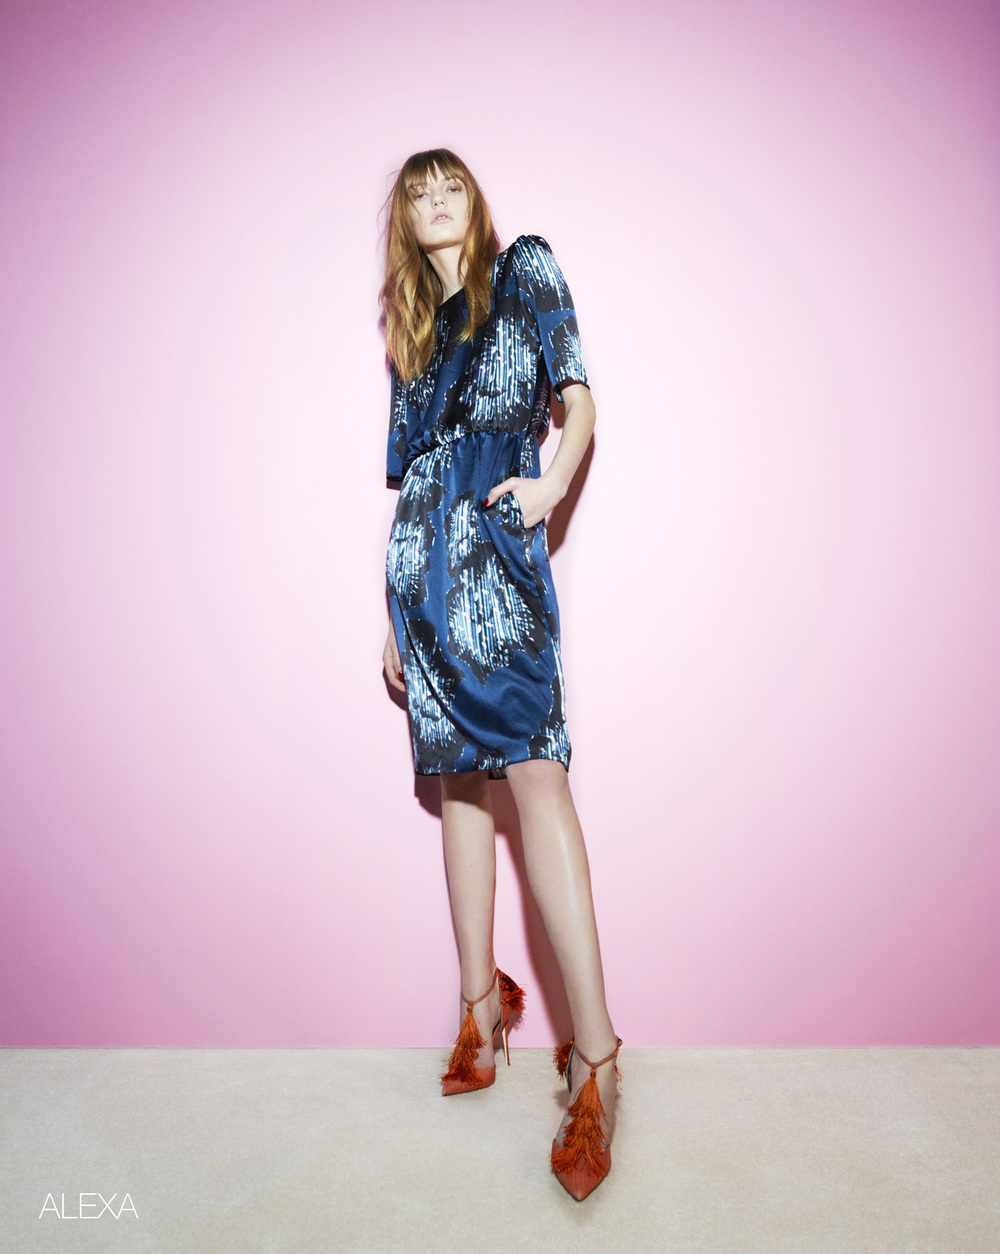 London Stylist Ellie Lines Moonshine Collection Silk Dress